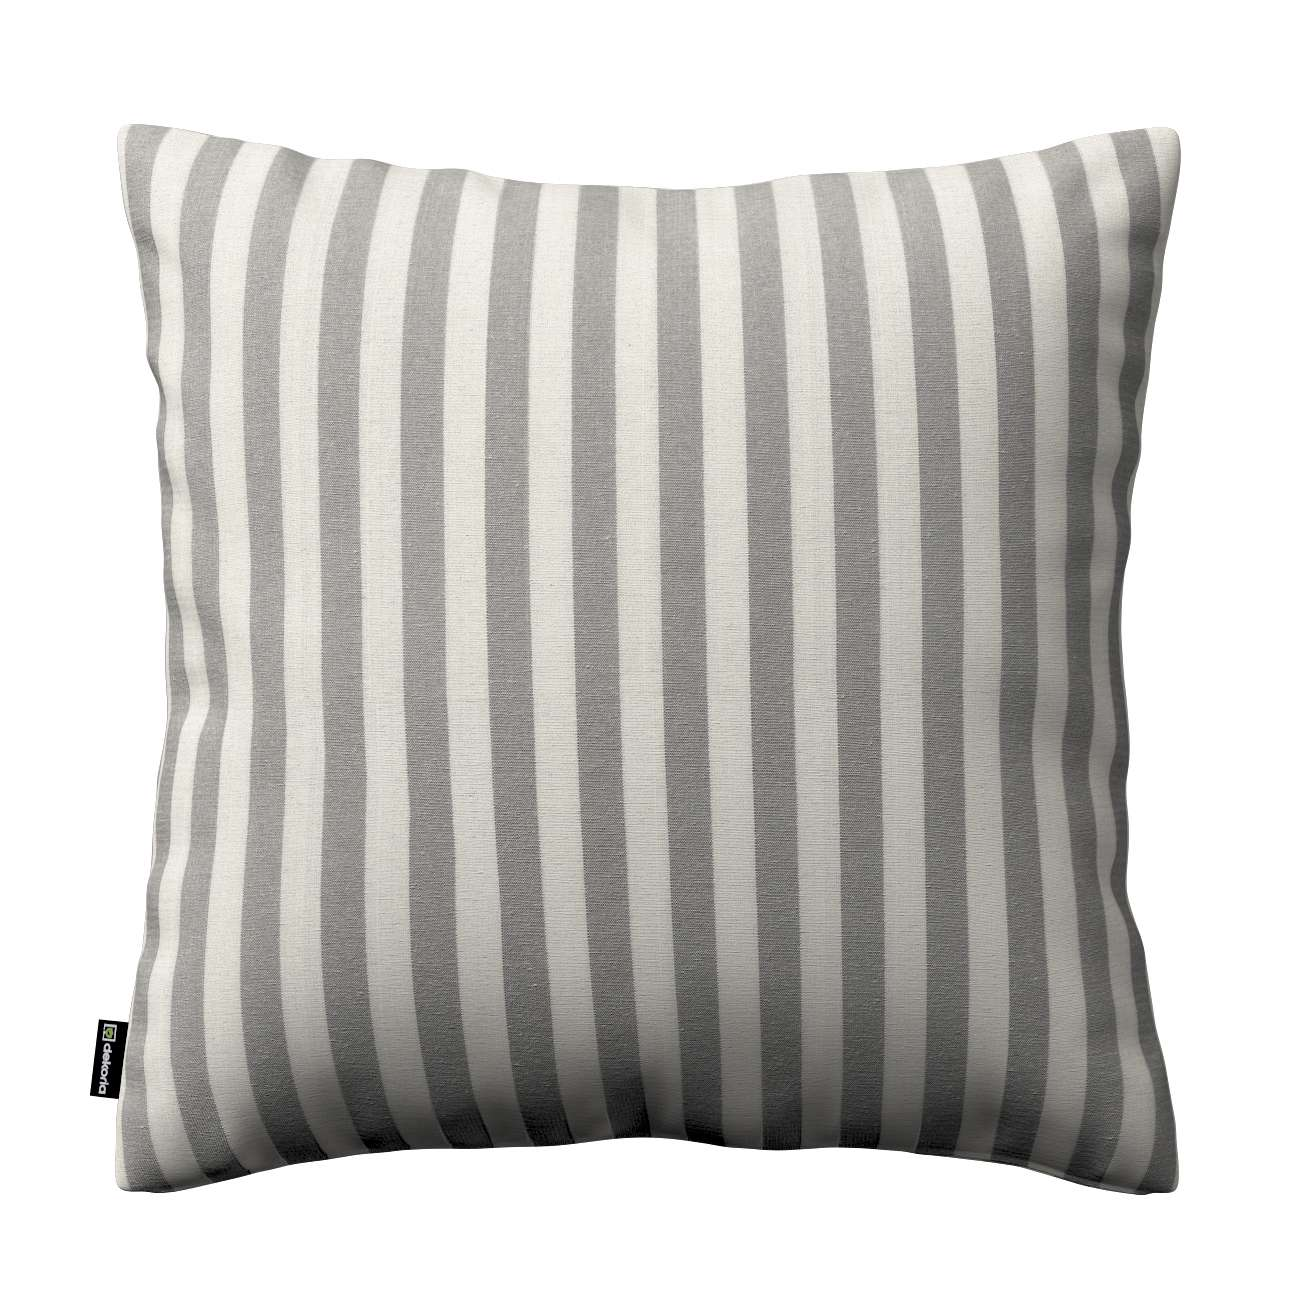 Kinga cushion cover 43 x 43 cm (17 x 17 inch) in collection Quadro, fabric: 136-12